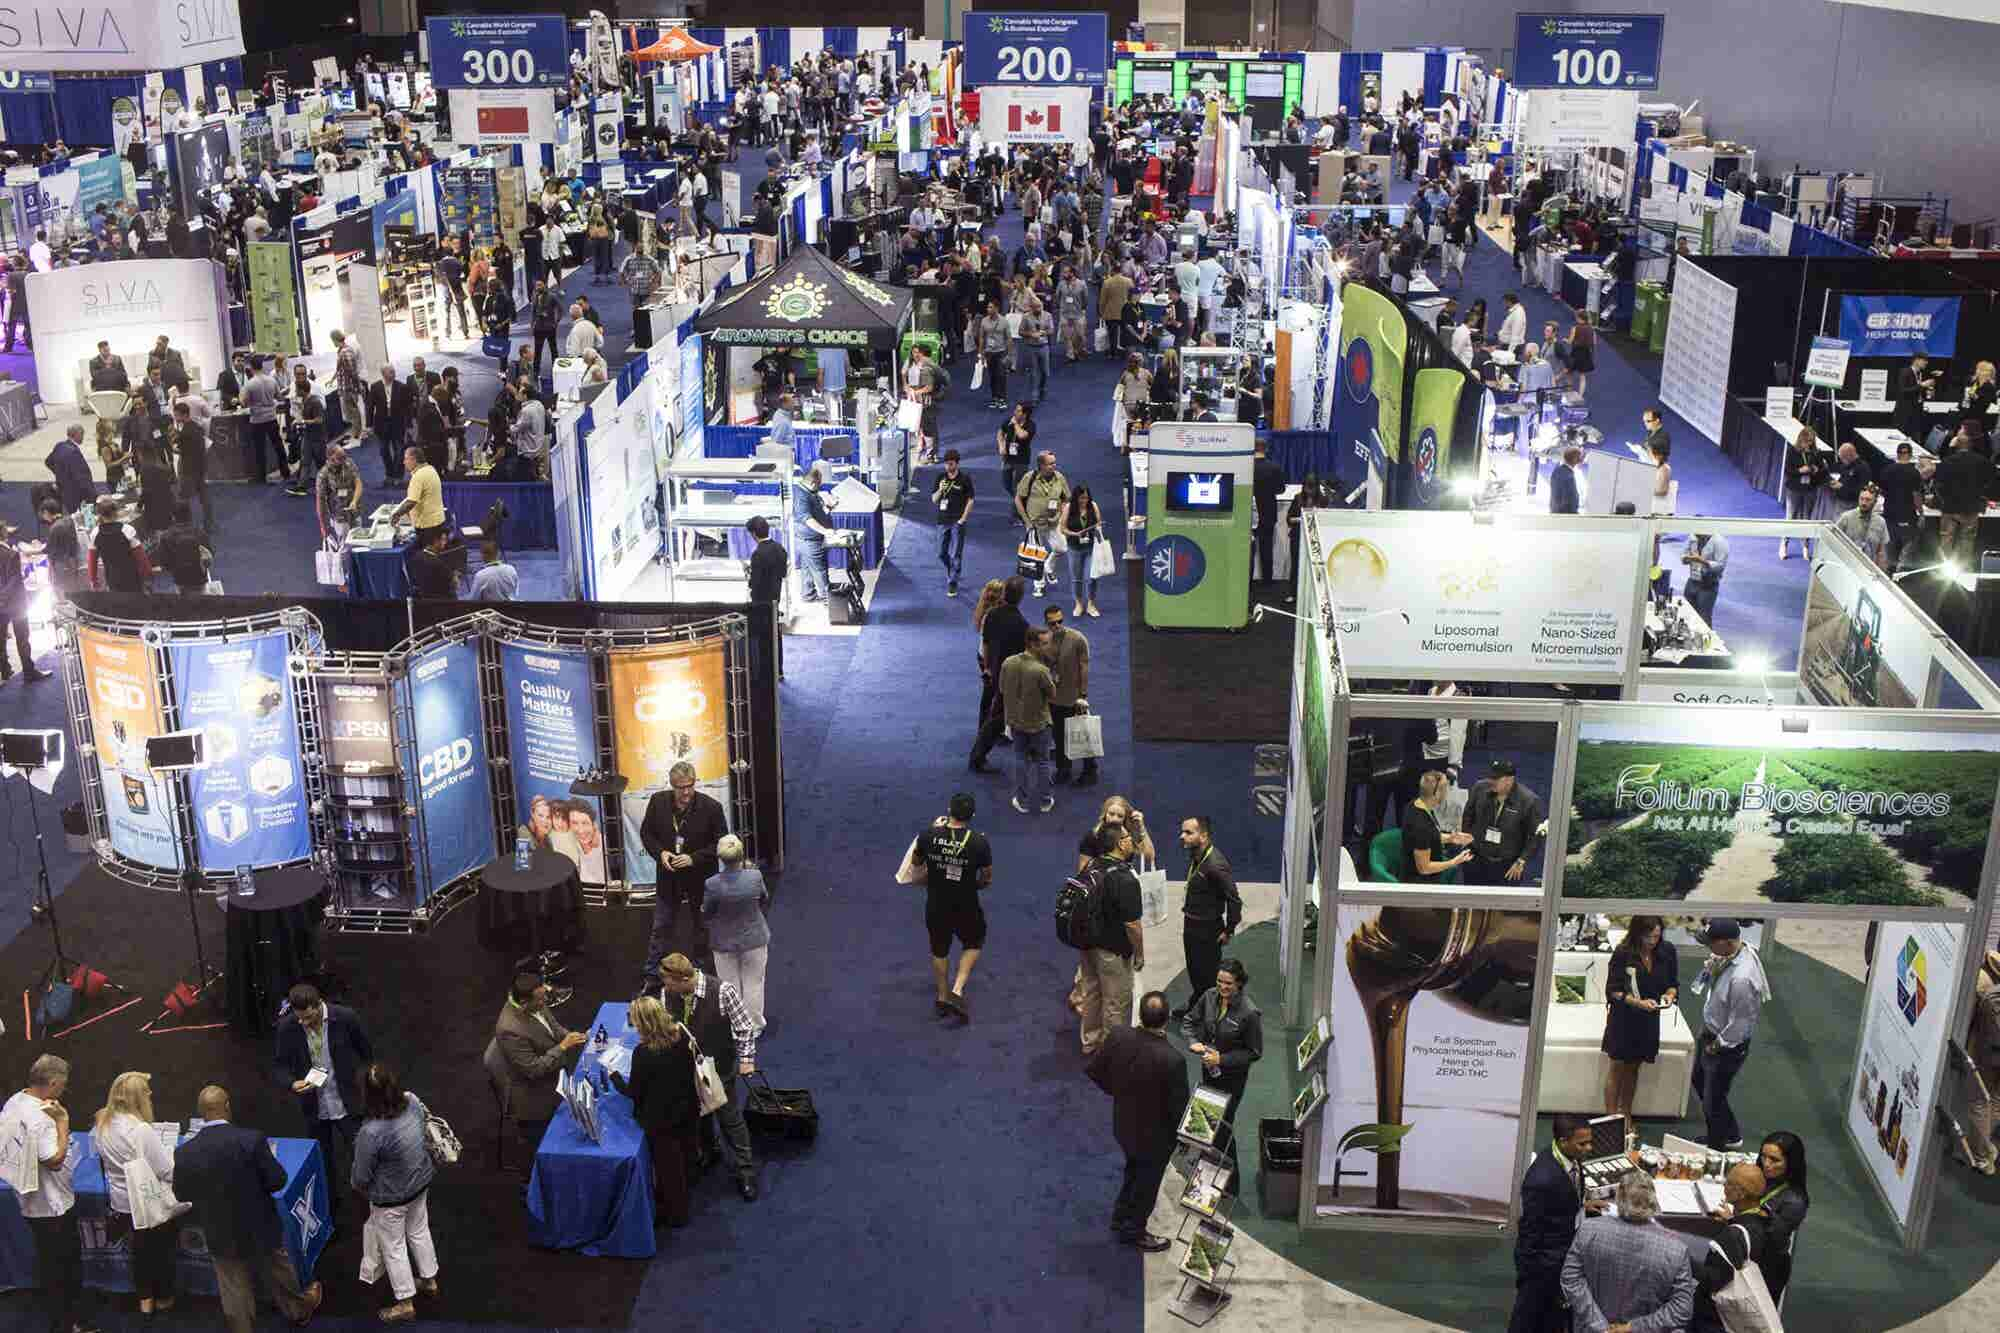 3 Trade-Show Tips for Meeting the Right People and Make a Memorable Impression